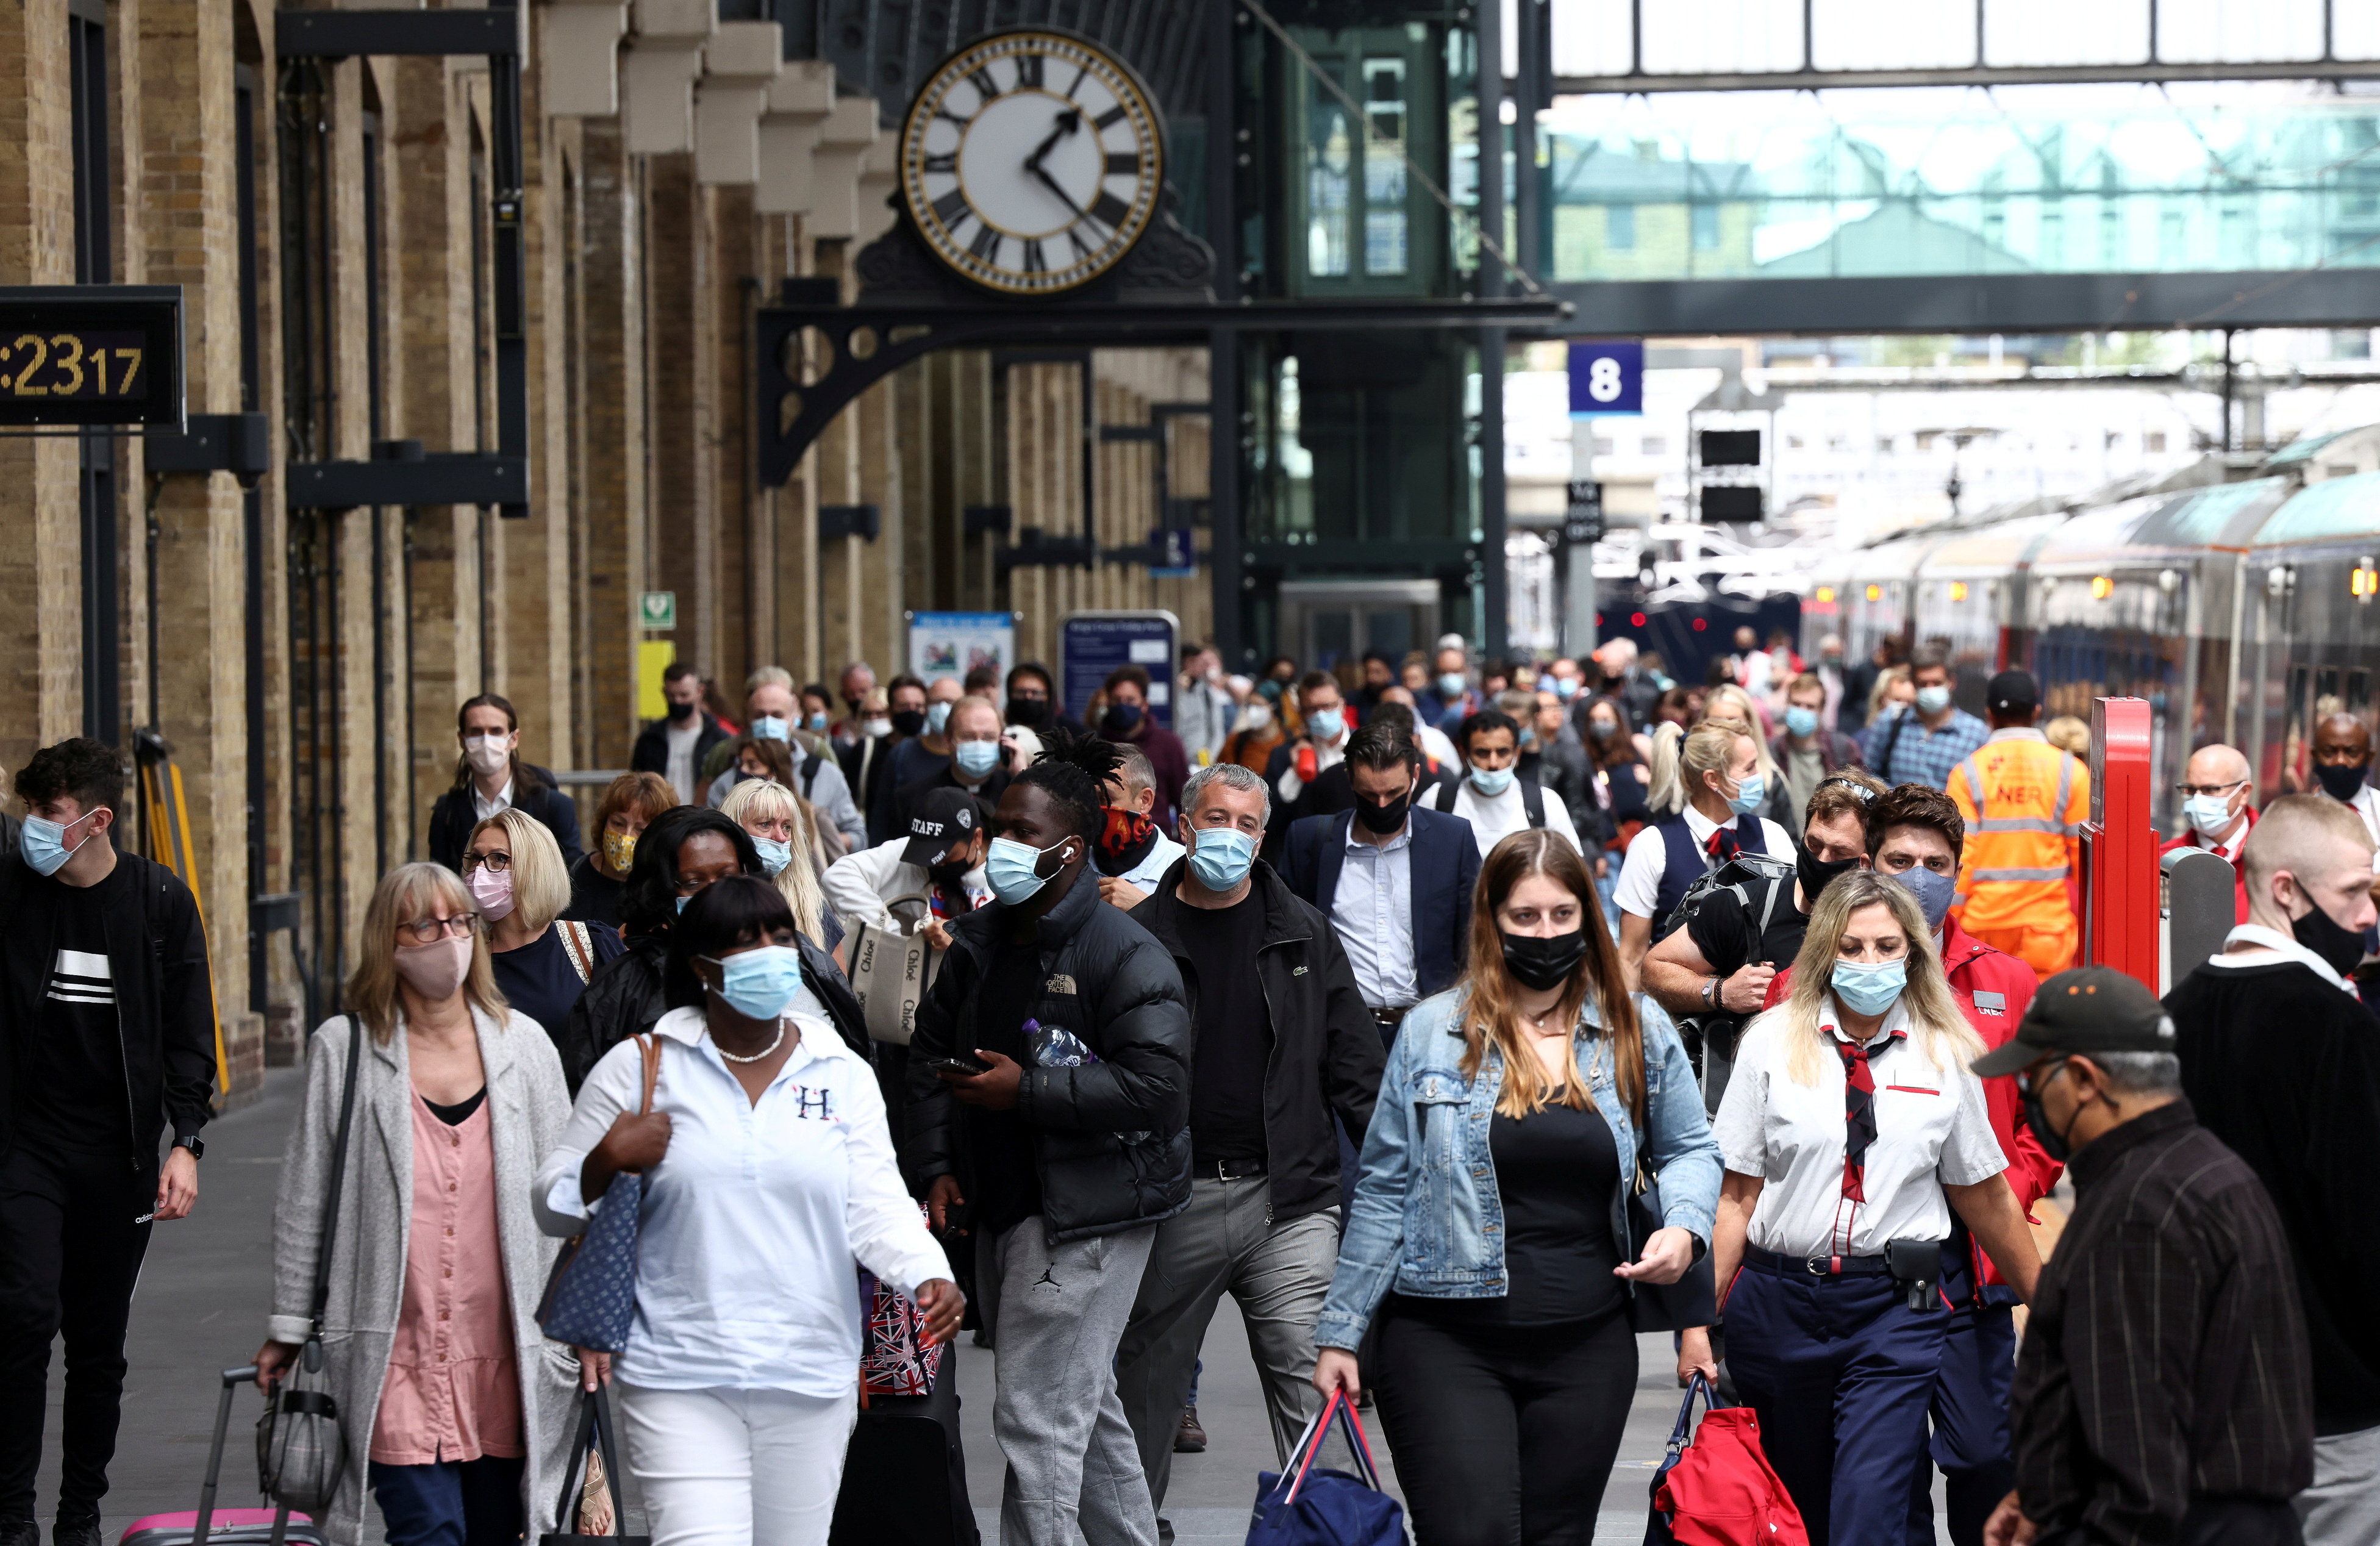 People wearing protective face masks walk along a platform at King's Cross Station, amid the coronavirus disease (COVID-19) outbreak in London, Britain, July 12, 2021. REUTERS/Henry Nicholls/File Photo